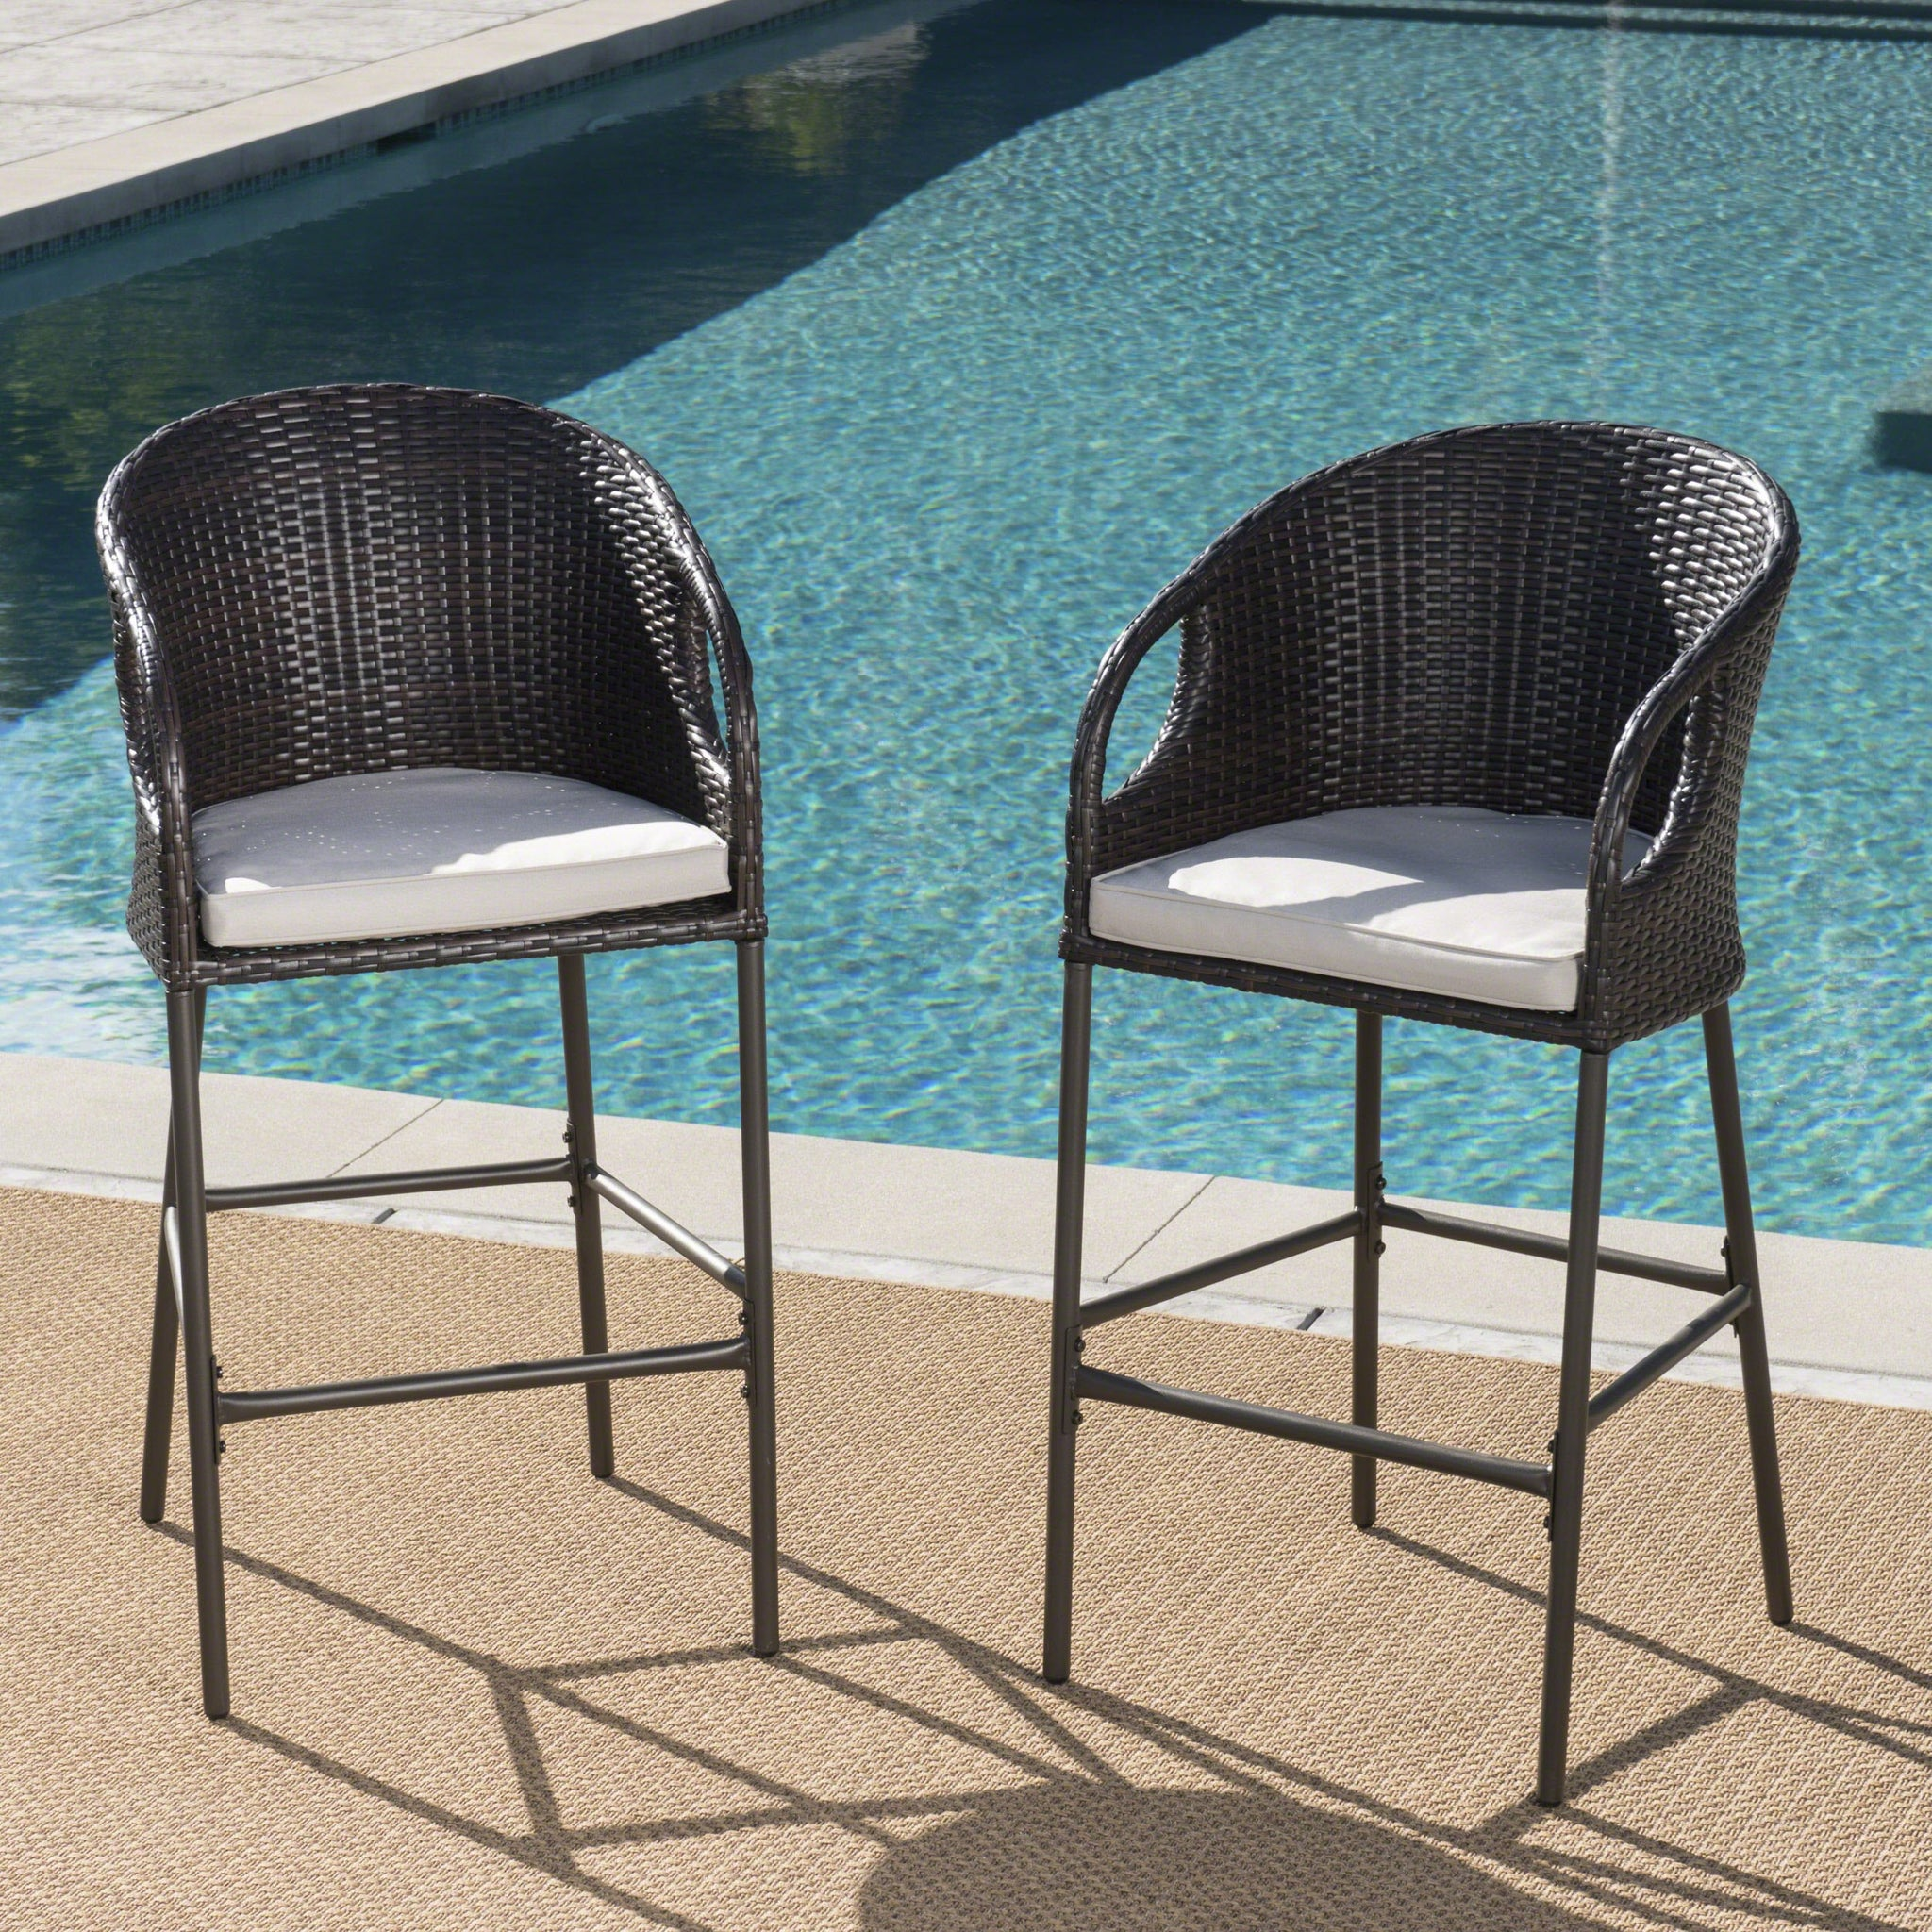 Doland Outdoor Wicker Barstools With Water Resistant Cushions (Set Of 2)